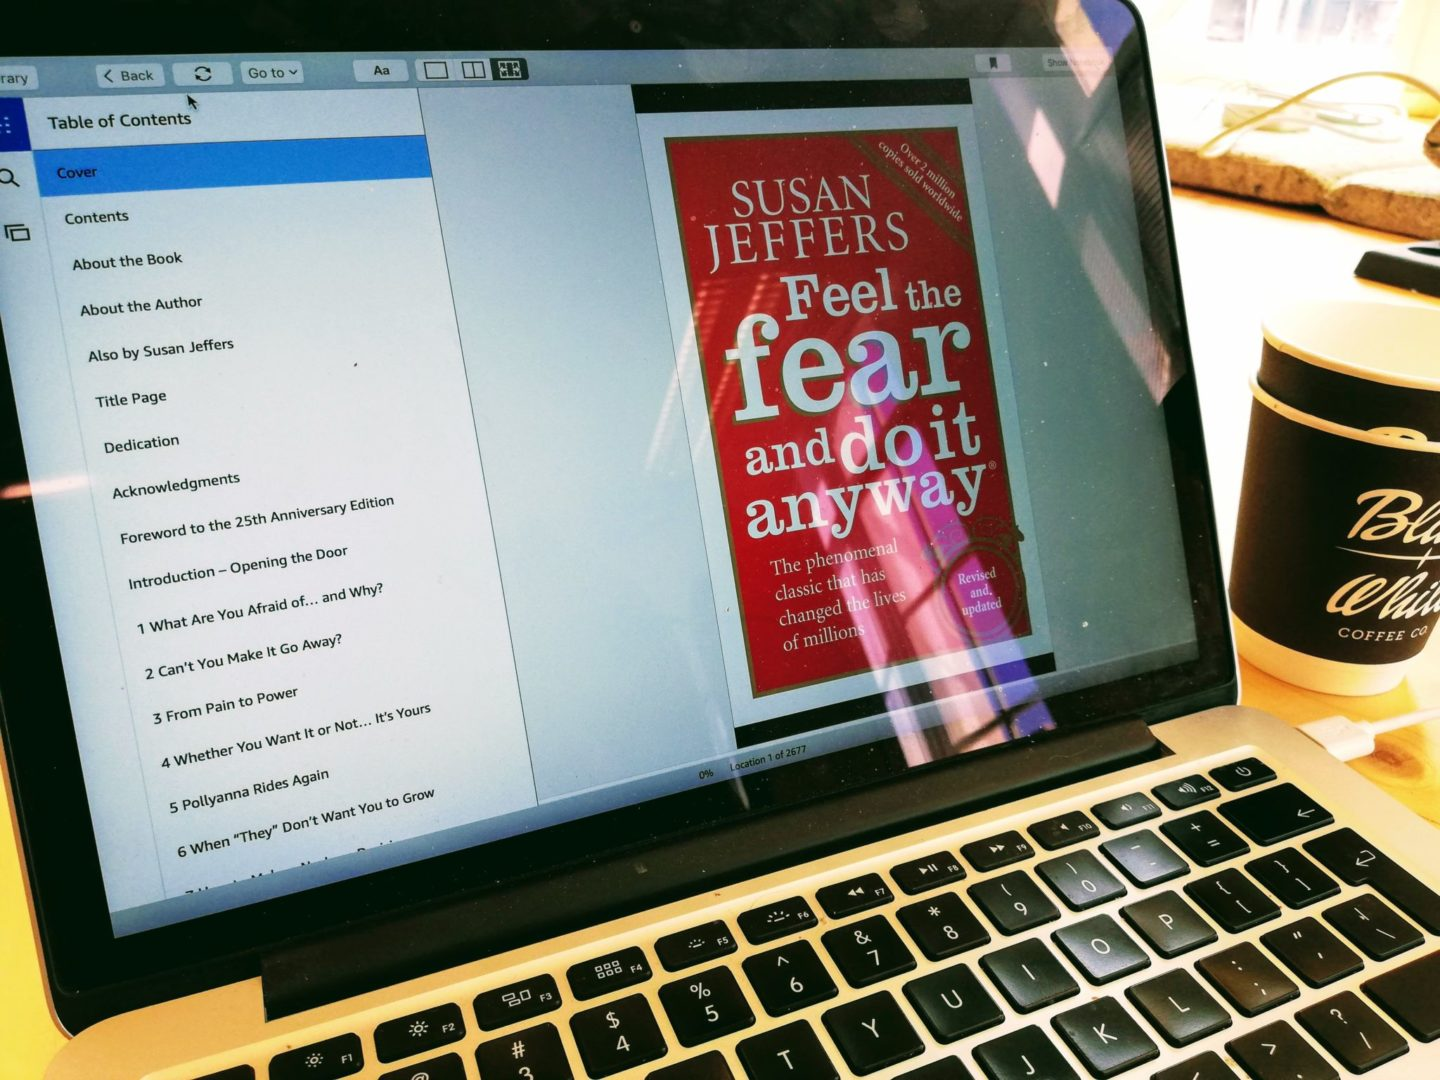 Susan Jeffers. Feel the Fear and Do it Anyway. Three steps to deal with fear